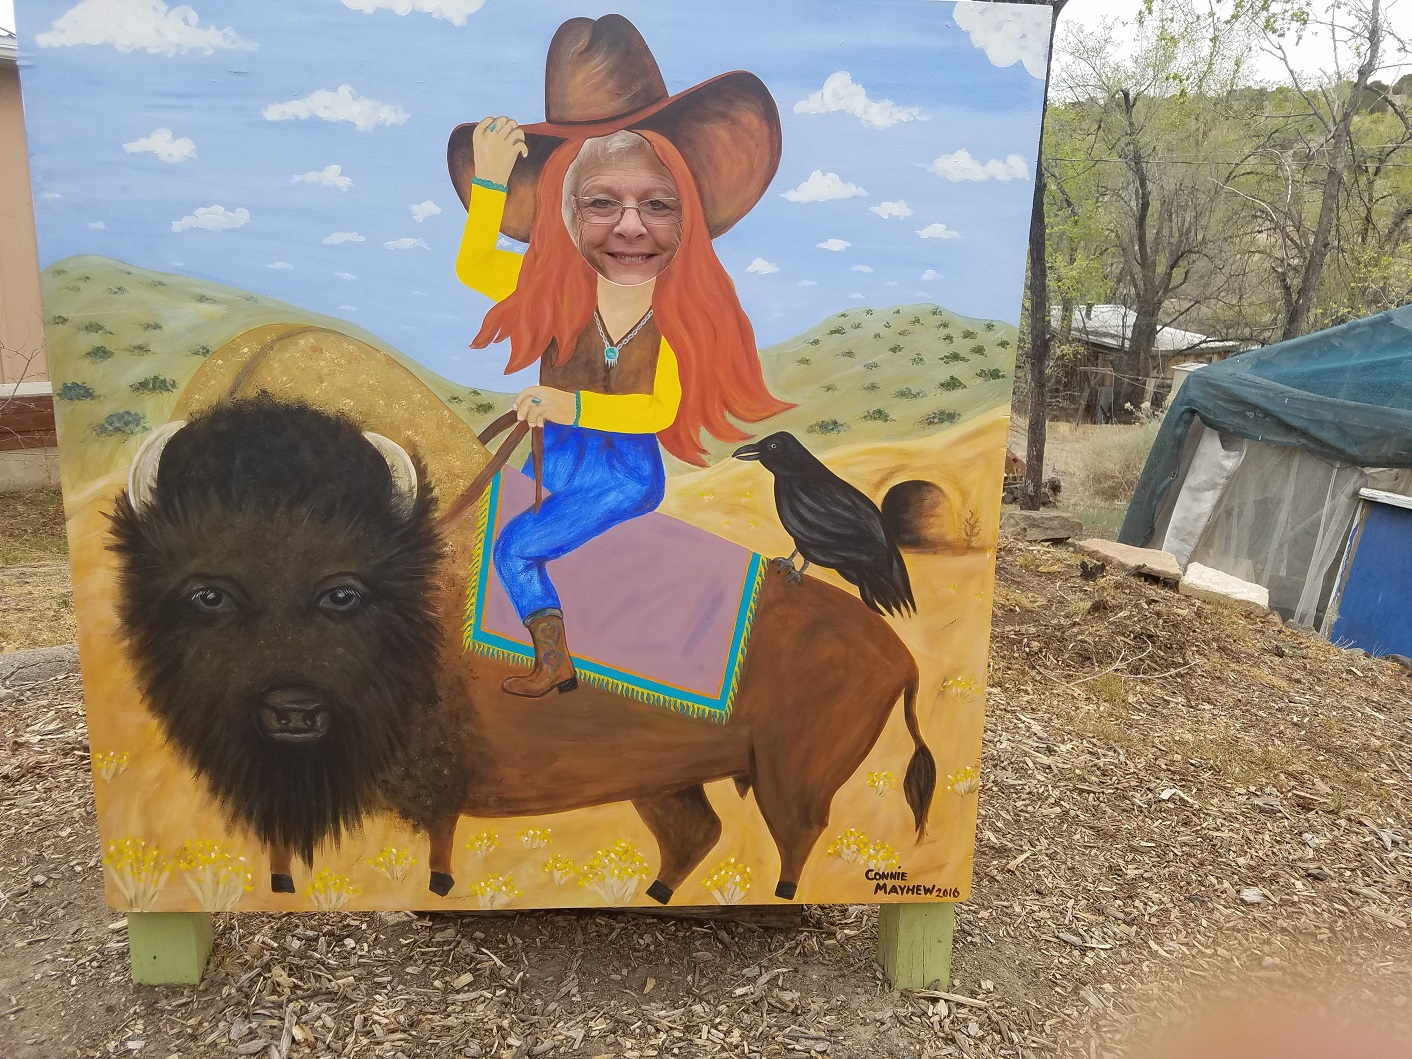 Me on my first buffalo ride...giddy-up...lol